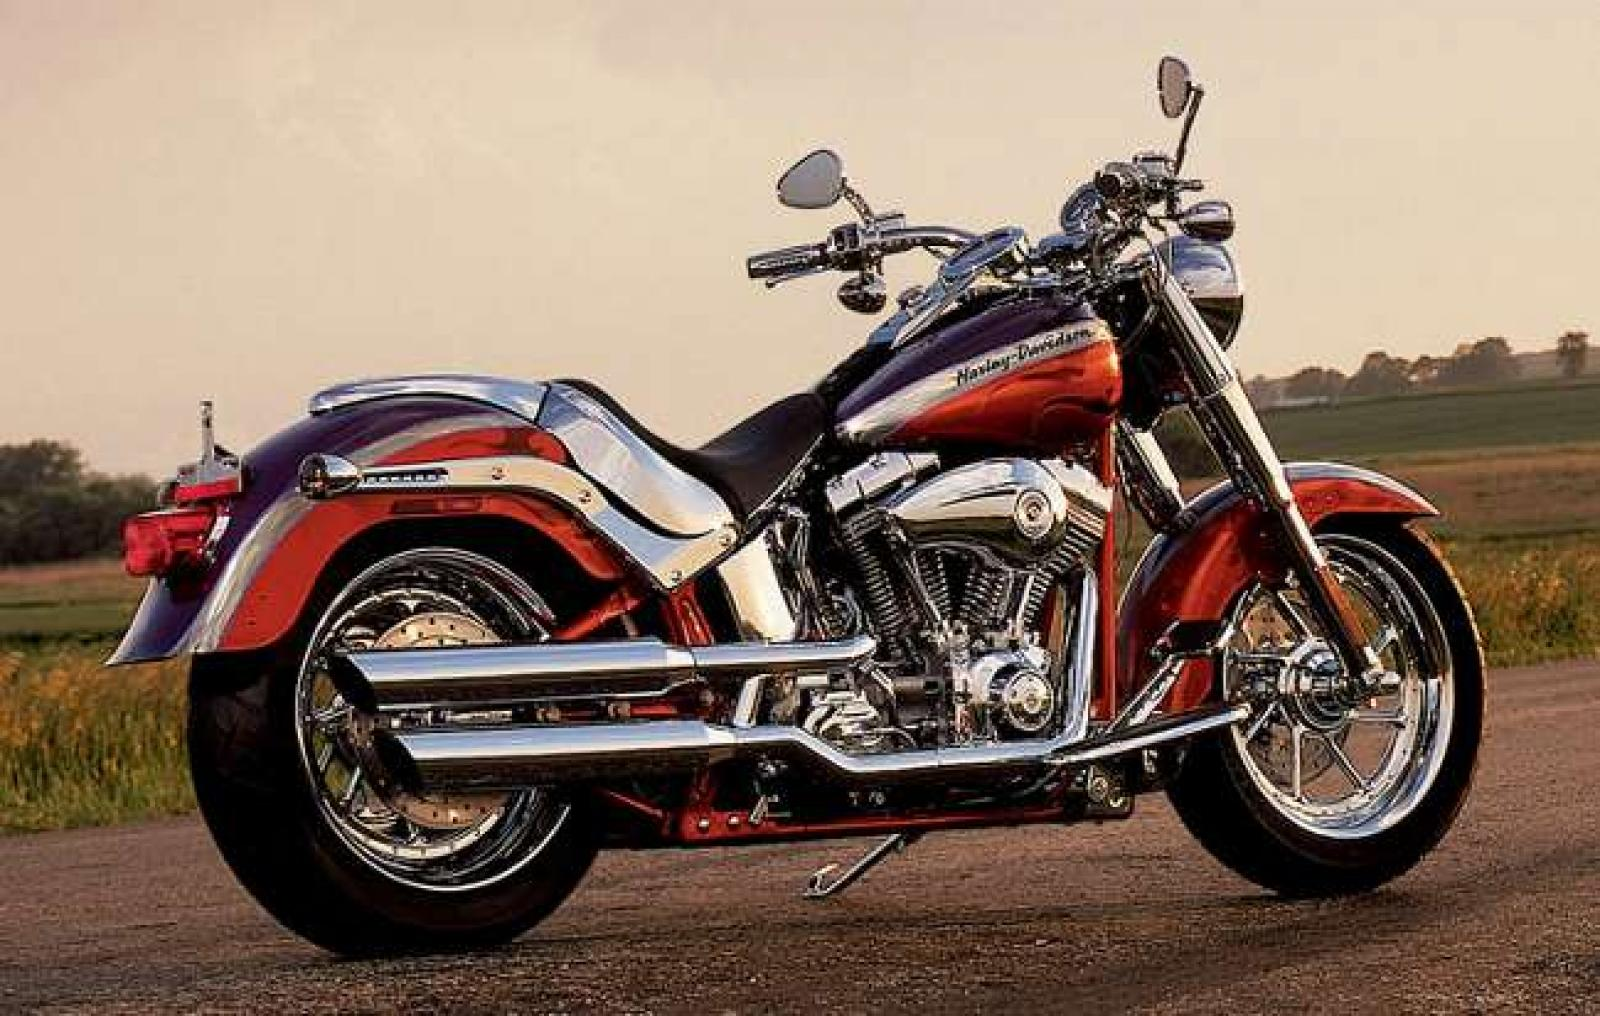 2006 harley davidson flstfse screamin eagle fat boy moto zombdrive com. Black Bedroom Furniture Sets. Home Design Ideas